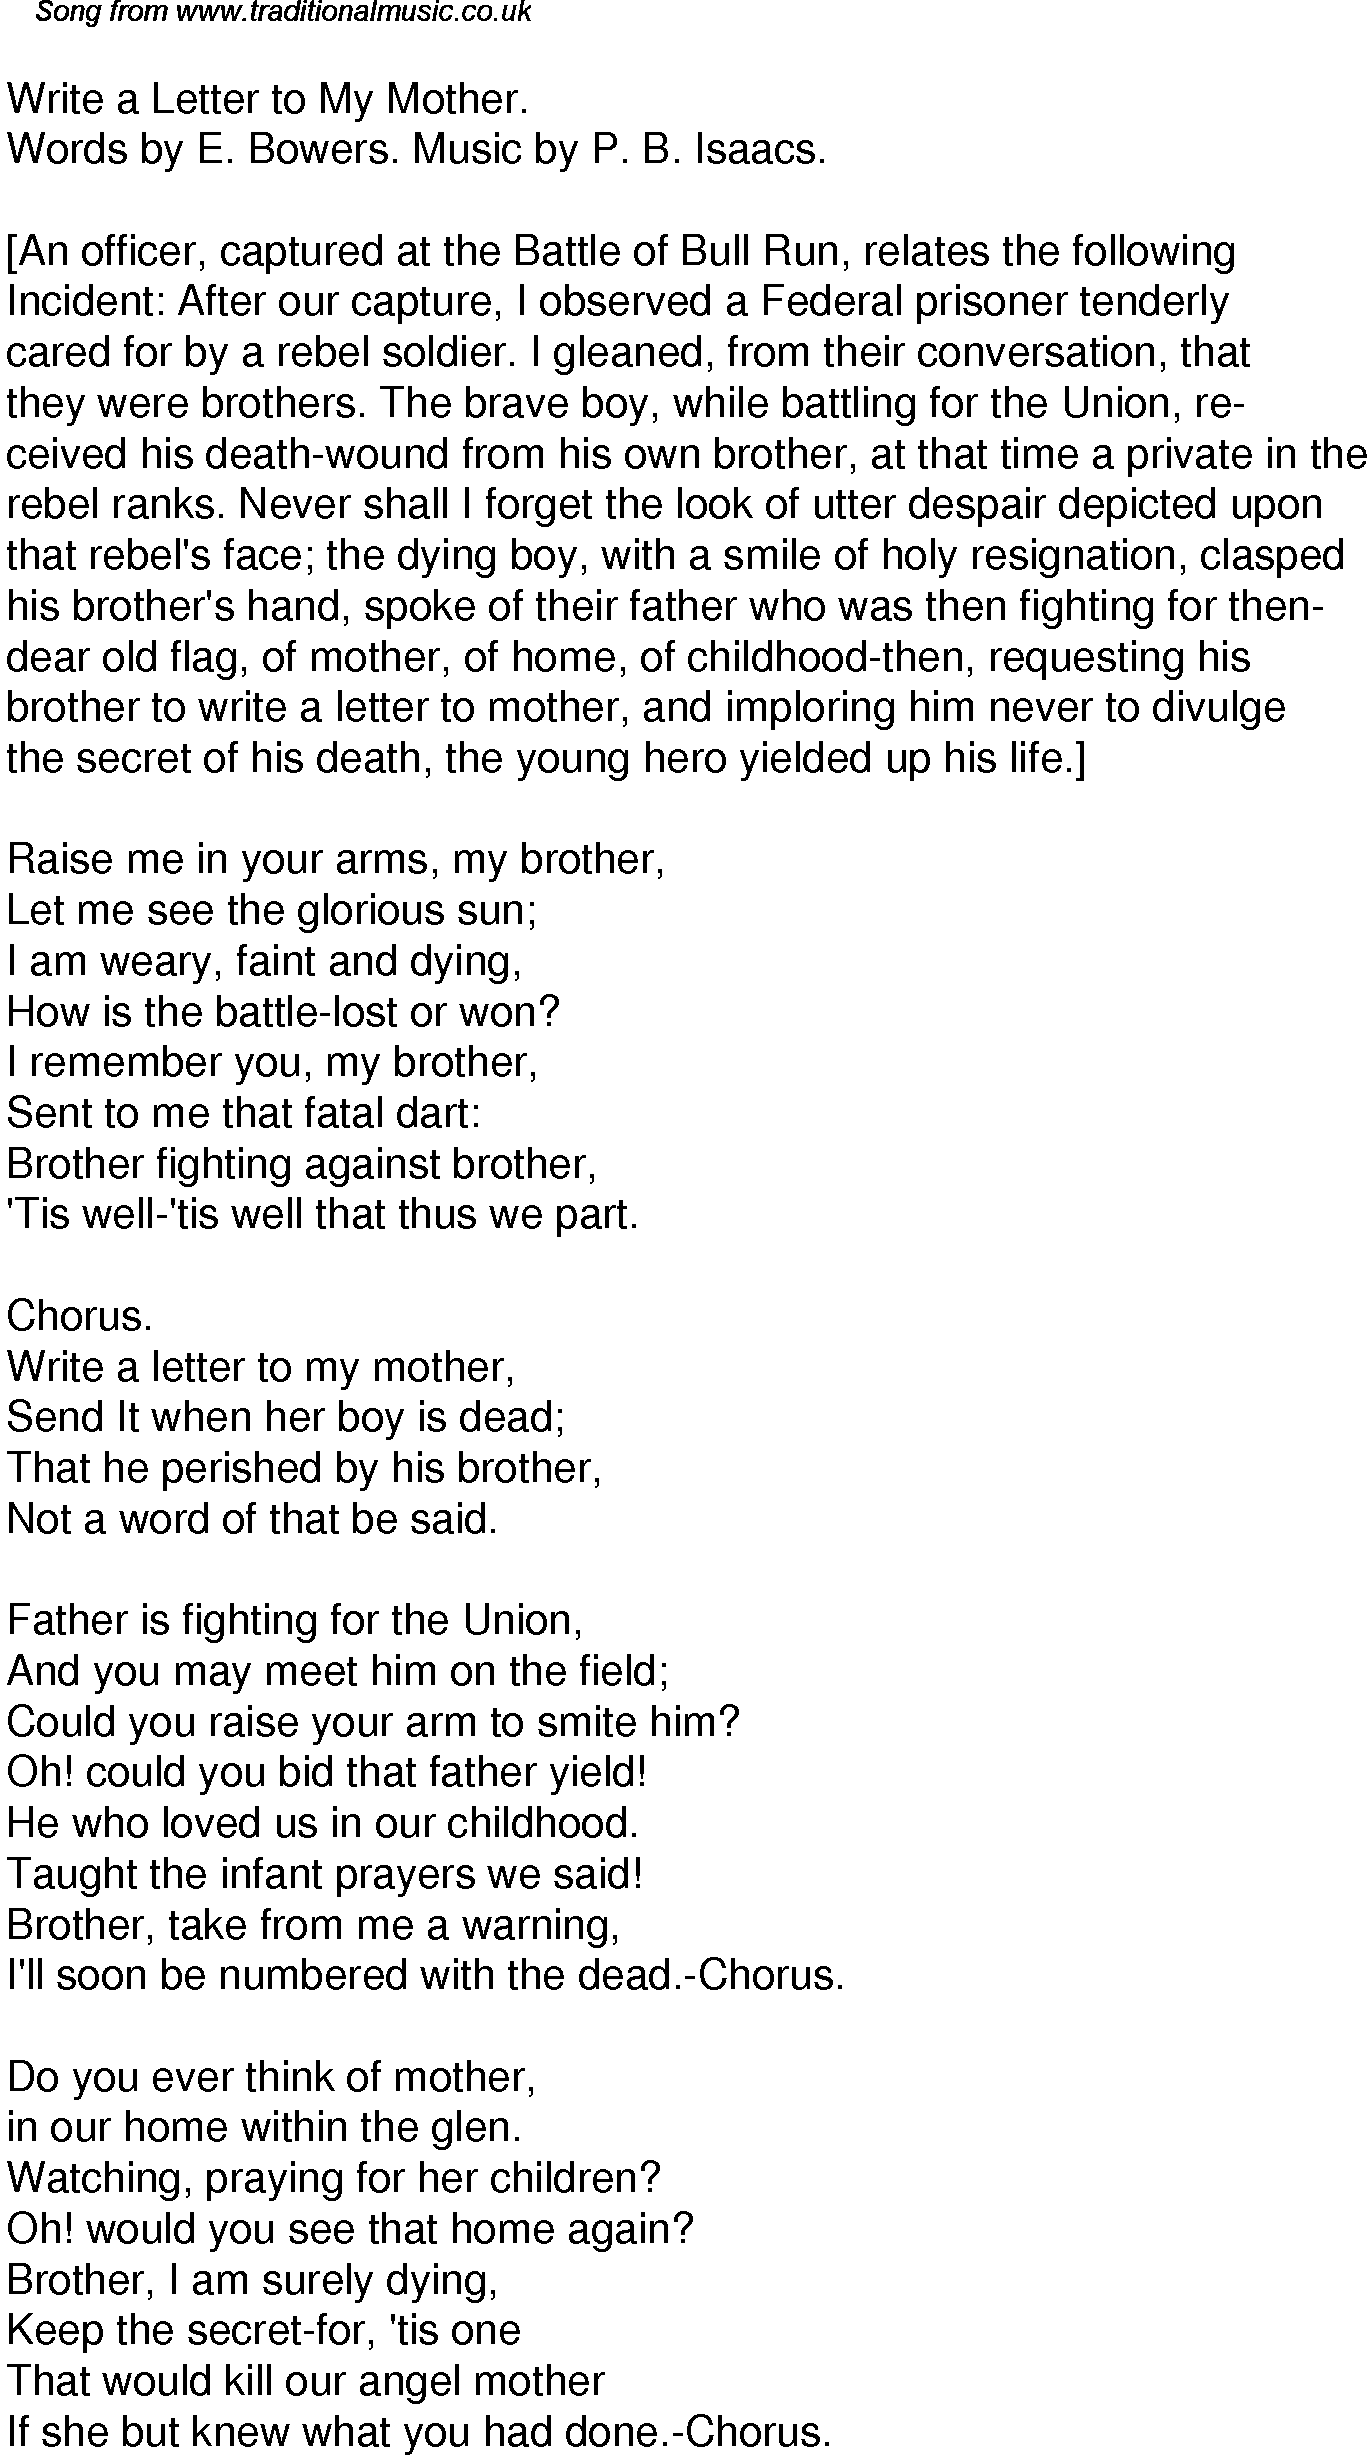 Old Time Song Lyrics for 59 Write A Letter To My Mother